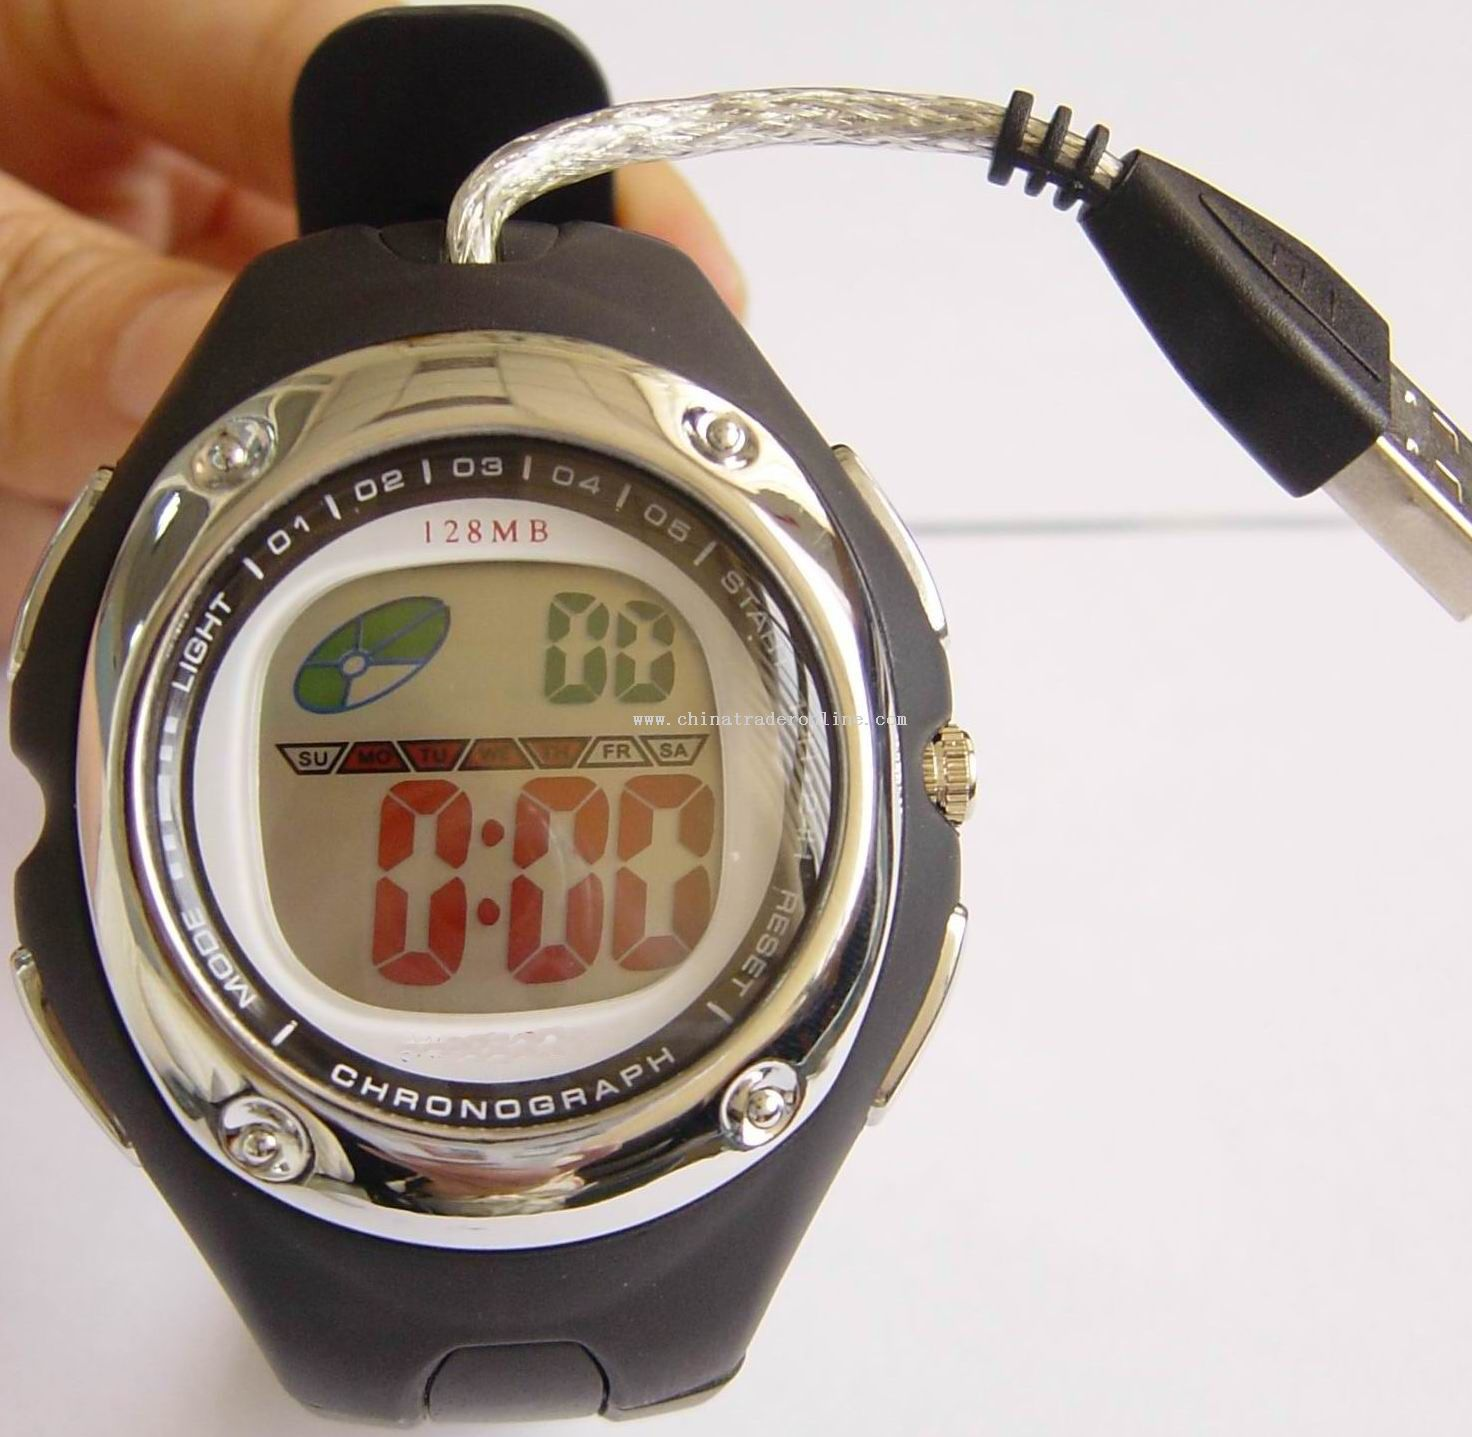 USB FLASH MEMORY WATCH